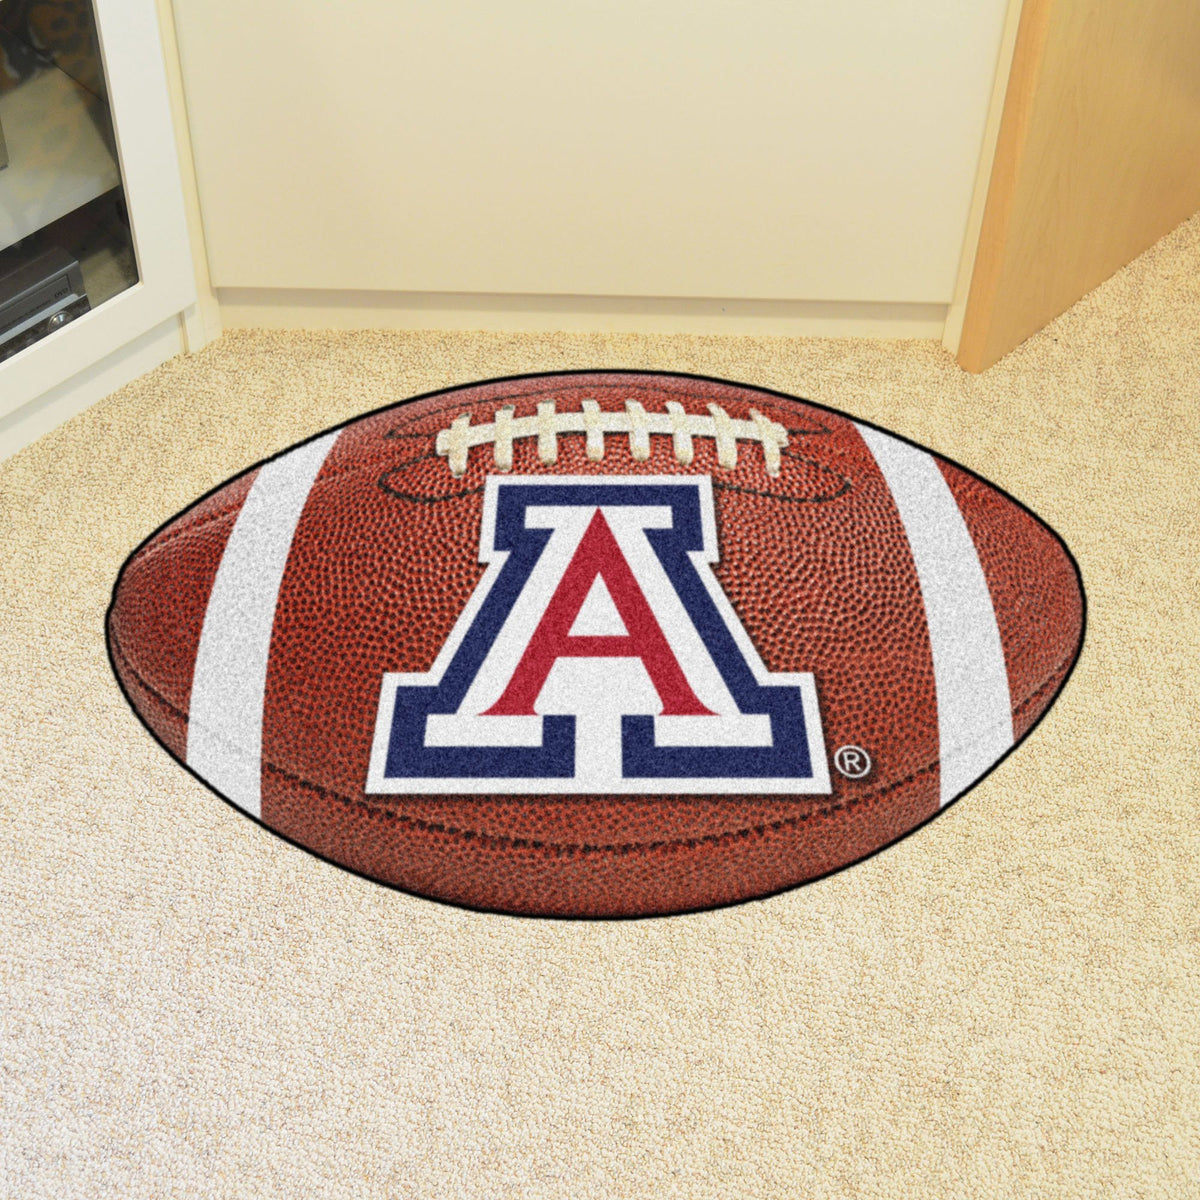 Collegiate - Football Mat: A - K Collegiate Mats, Rectangular Mats, Football Mat, Collegiate, Home Fan Mats Arizona